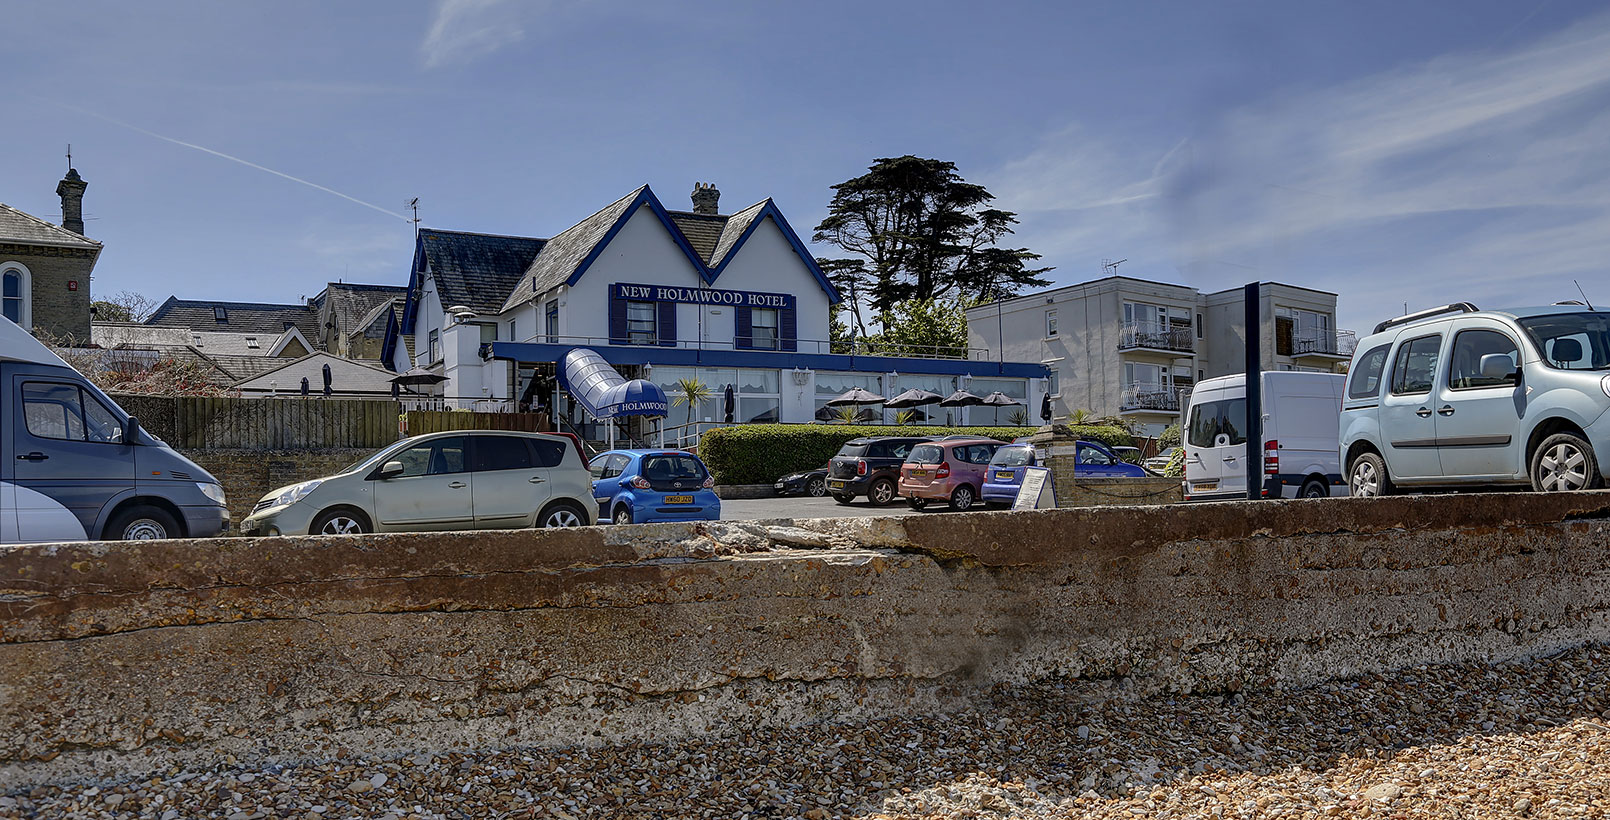 The New Holmwood Hotel Cowes